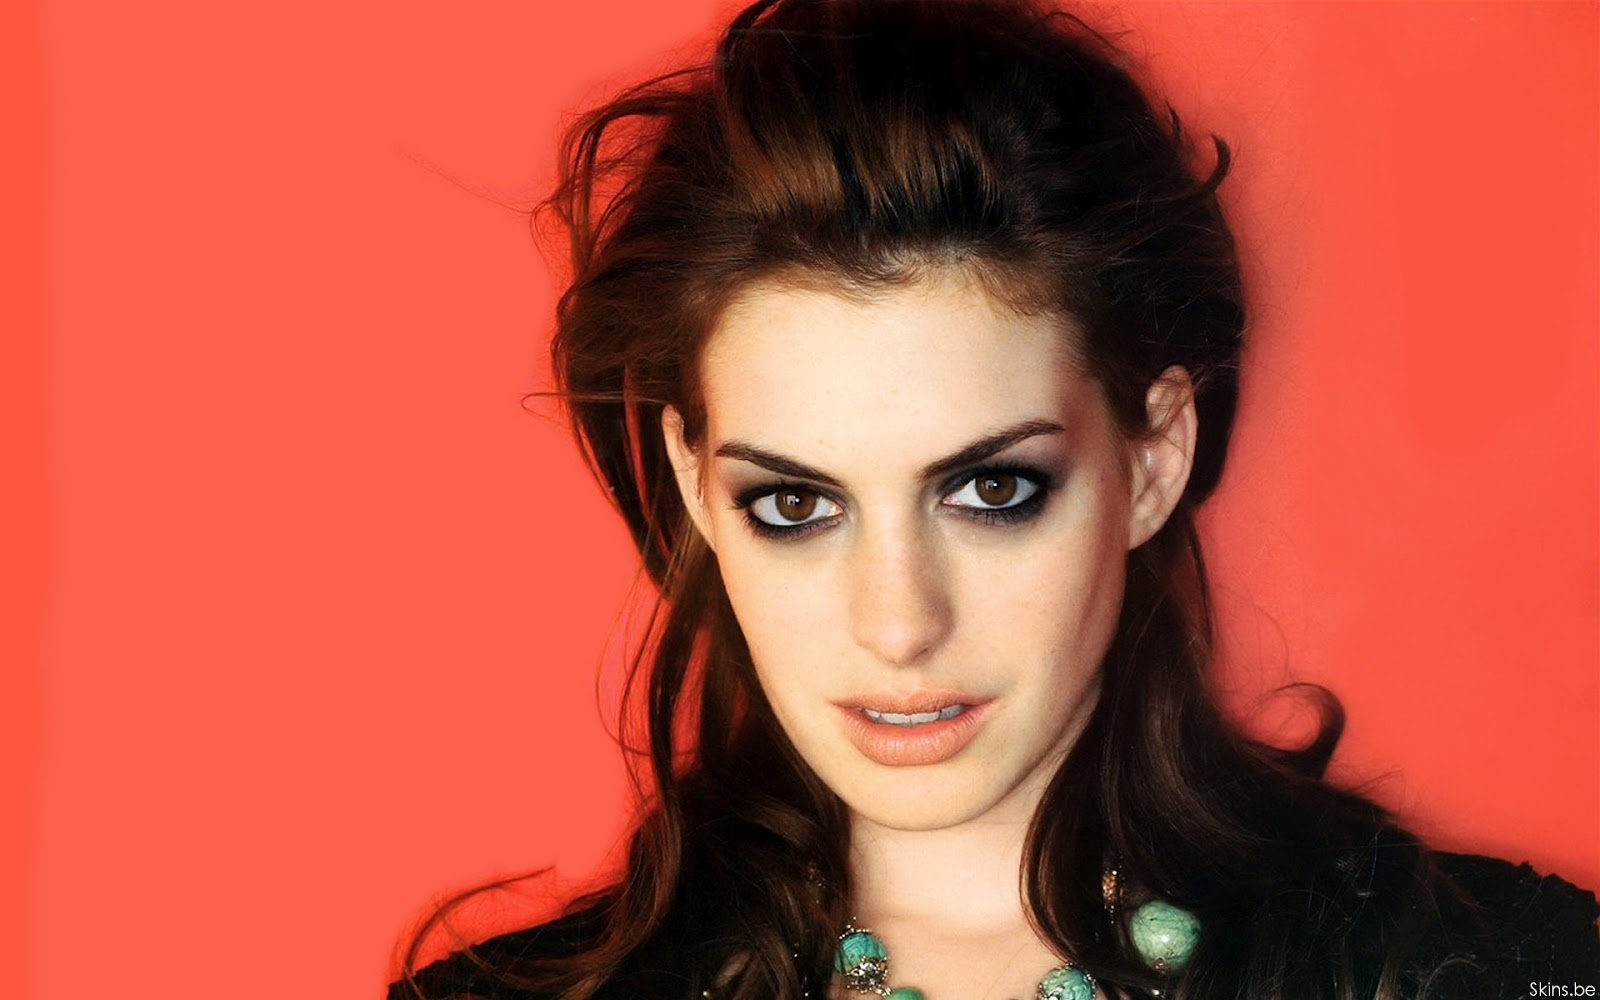 All carito fashion september 2012 - The Best Of Anne Hathaway